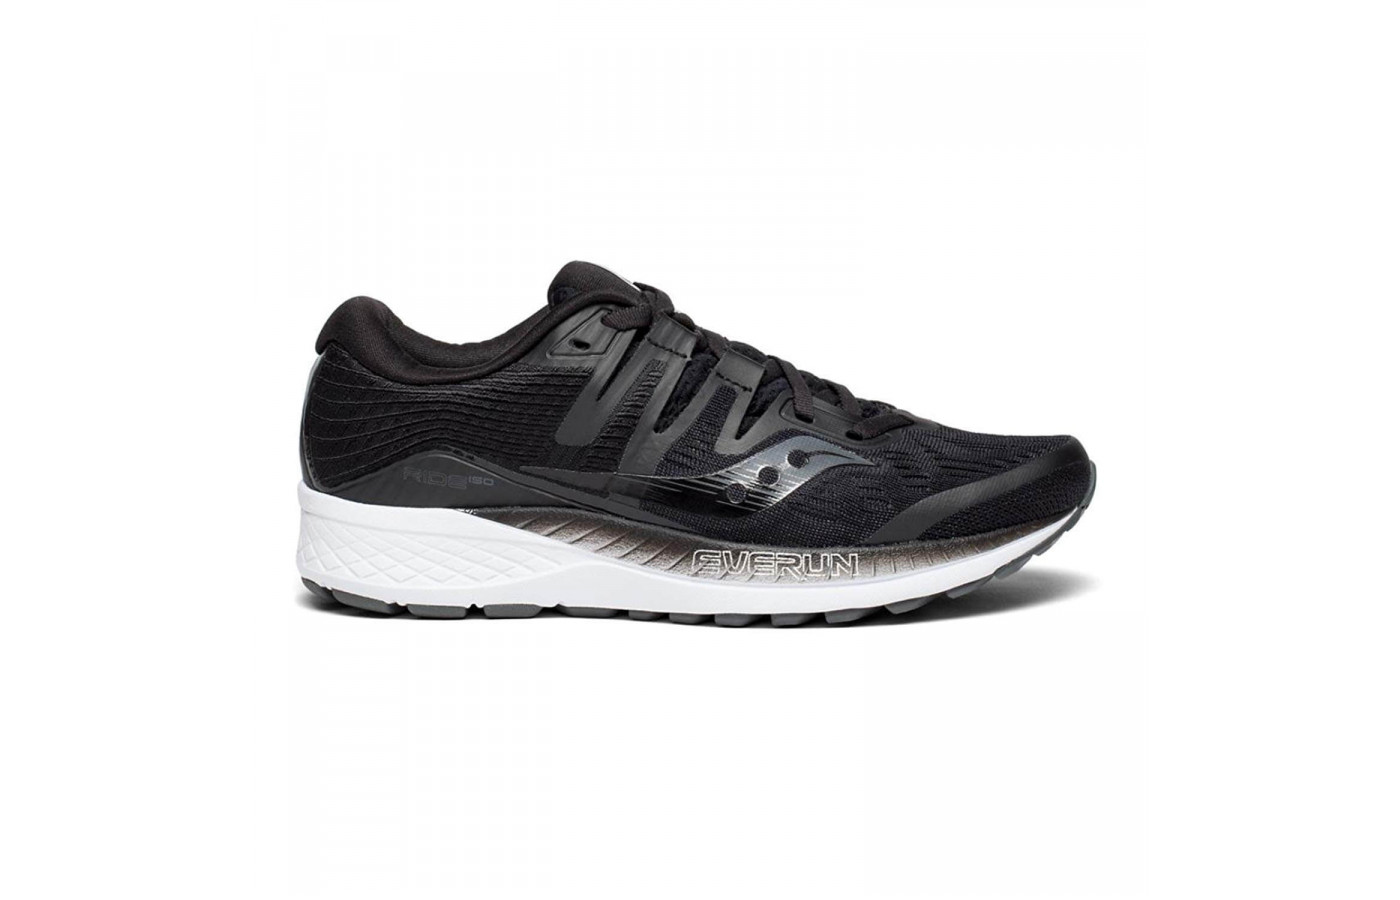 The Saucony Ride ISO is a neutral shoe